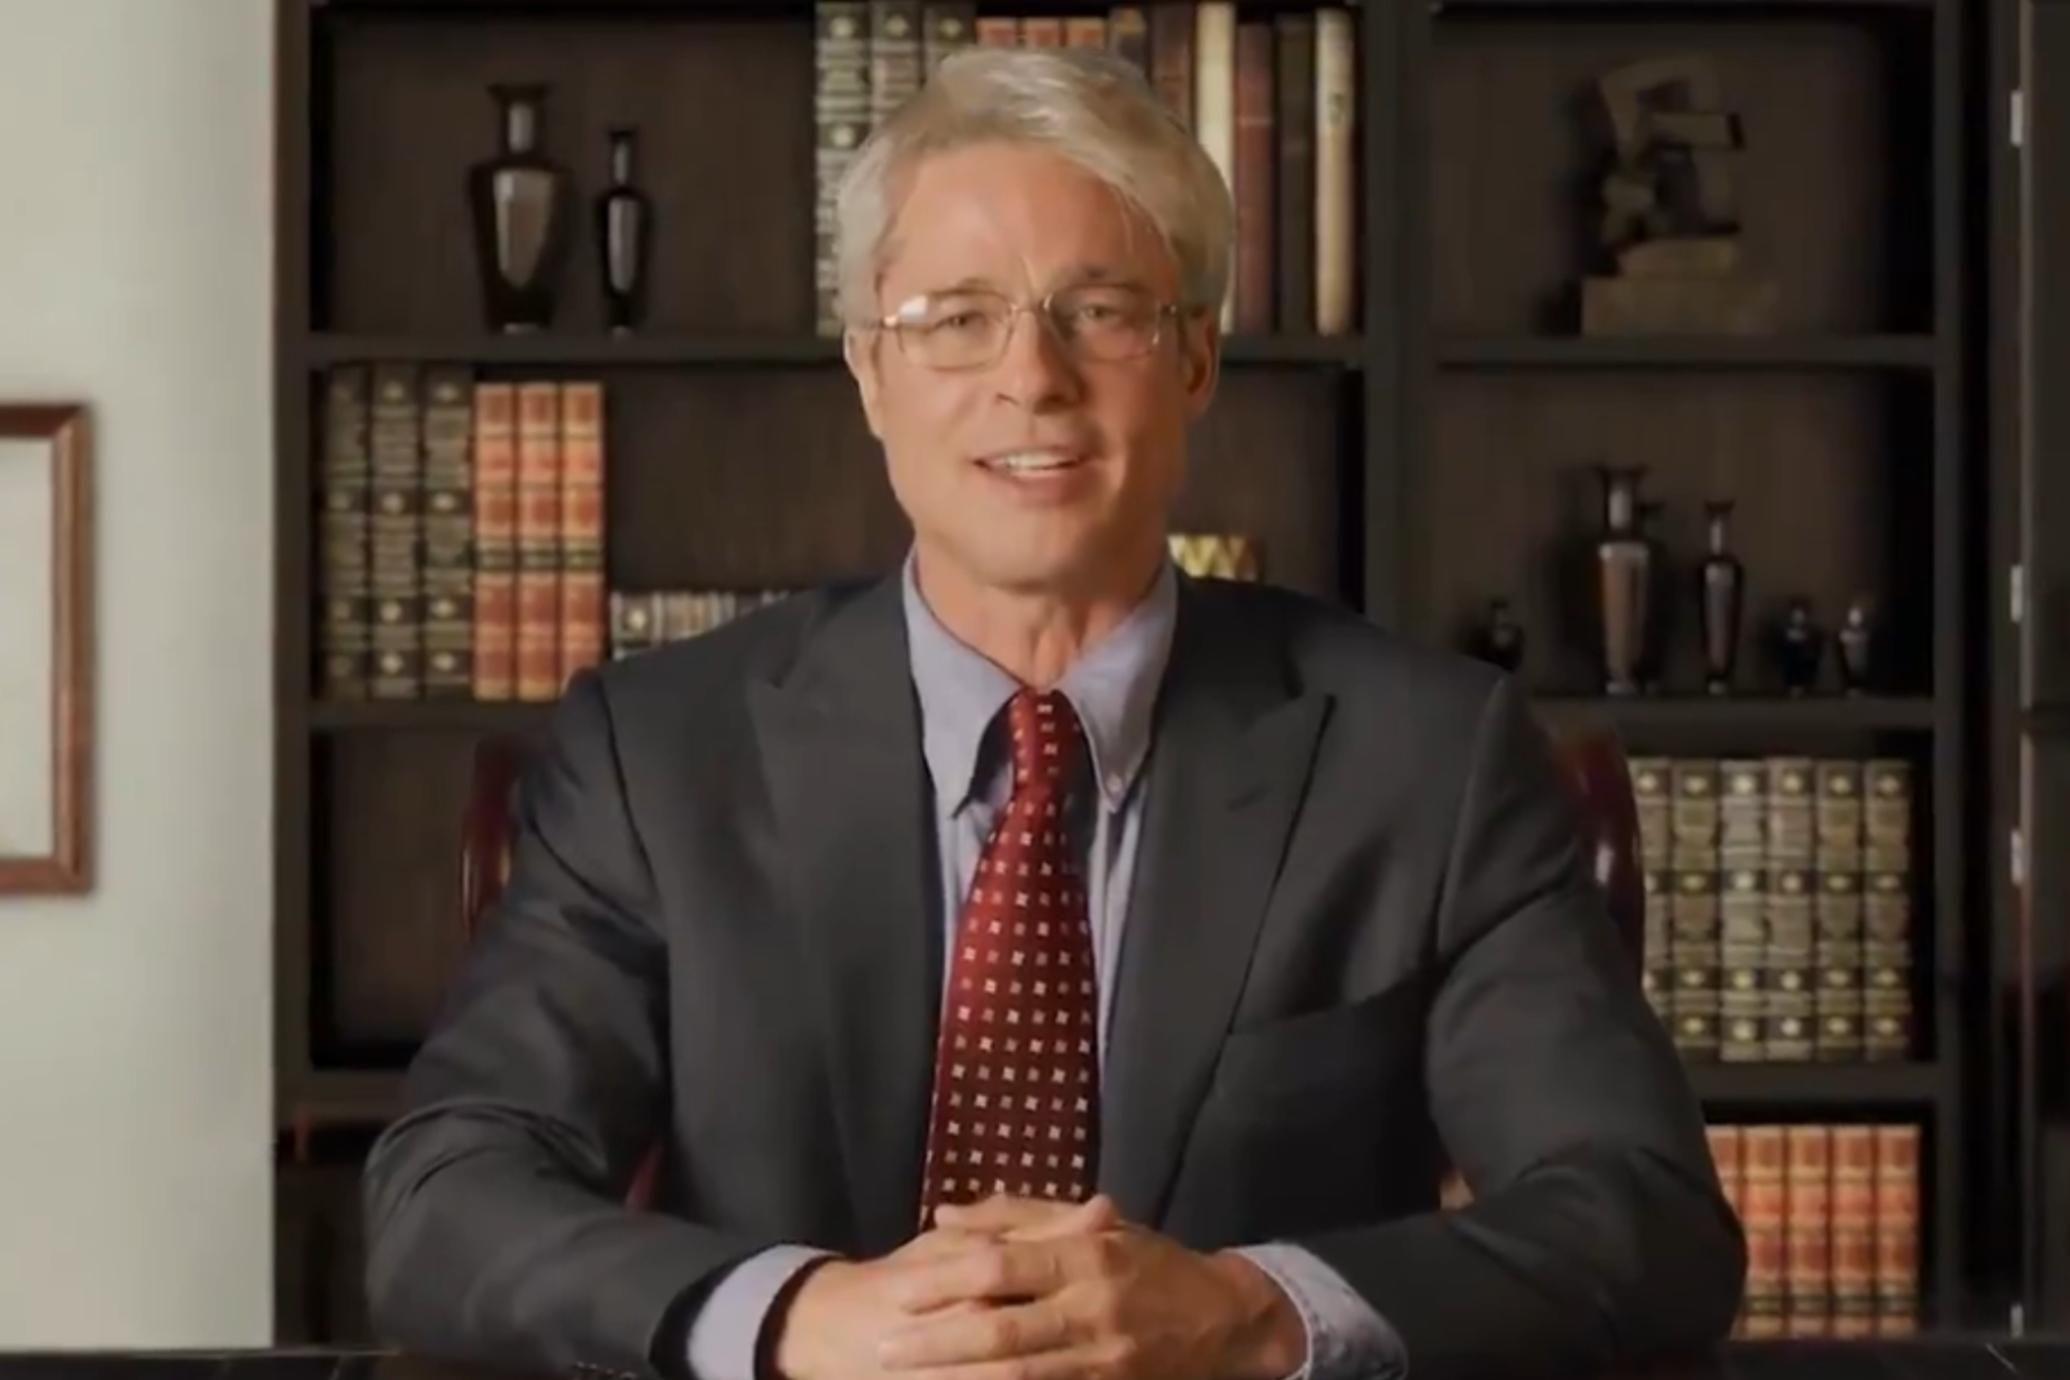 Brad Pitt Suits Up as Dr. Fauci for Saturday Night Live's Cold Open | TV Guide